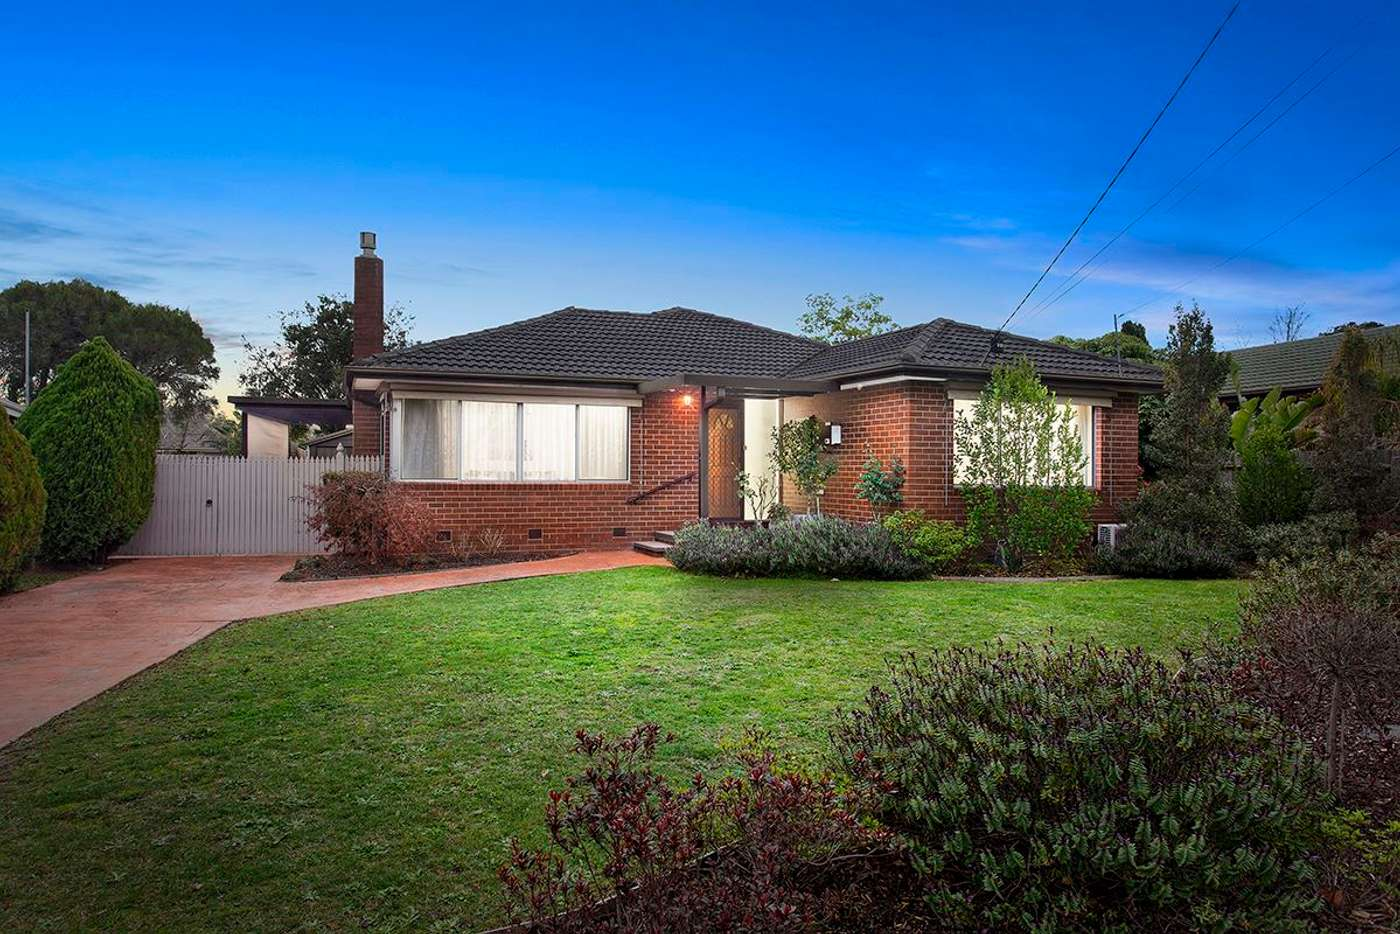 Main view of Homely house listing, 17 Glengariff Drive, Mulgrave VIC 3170